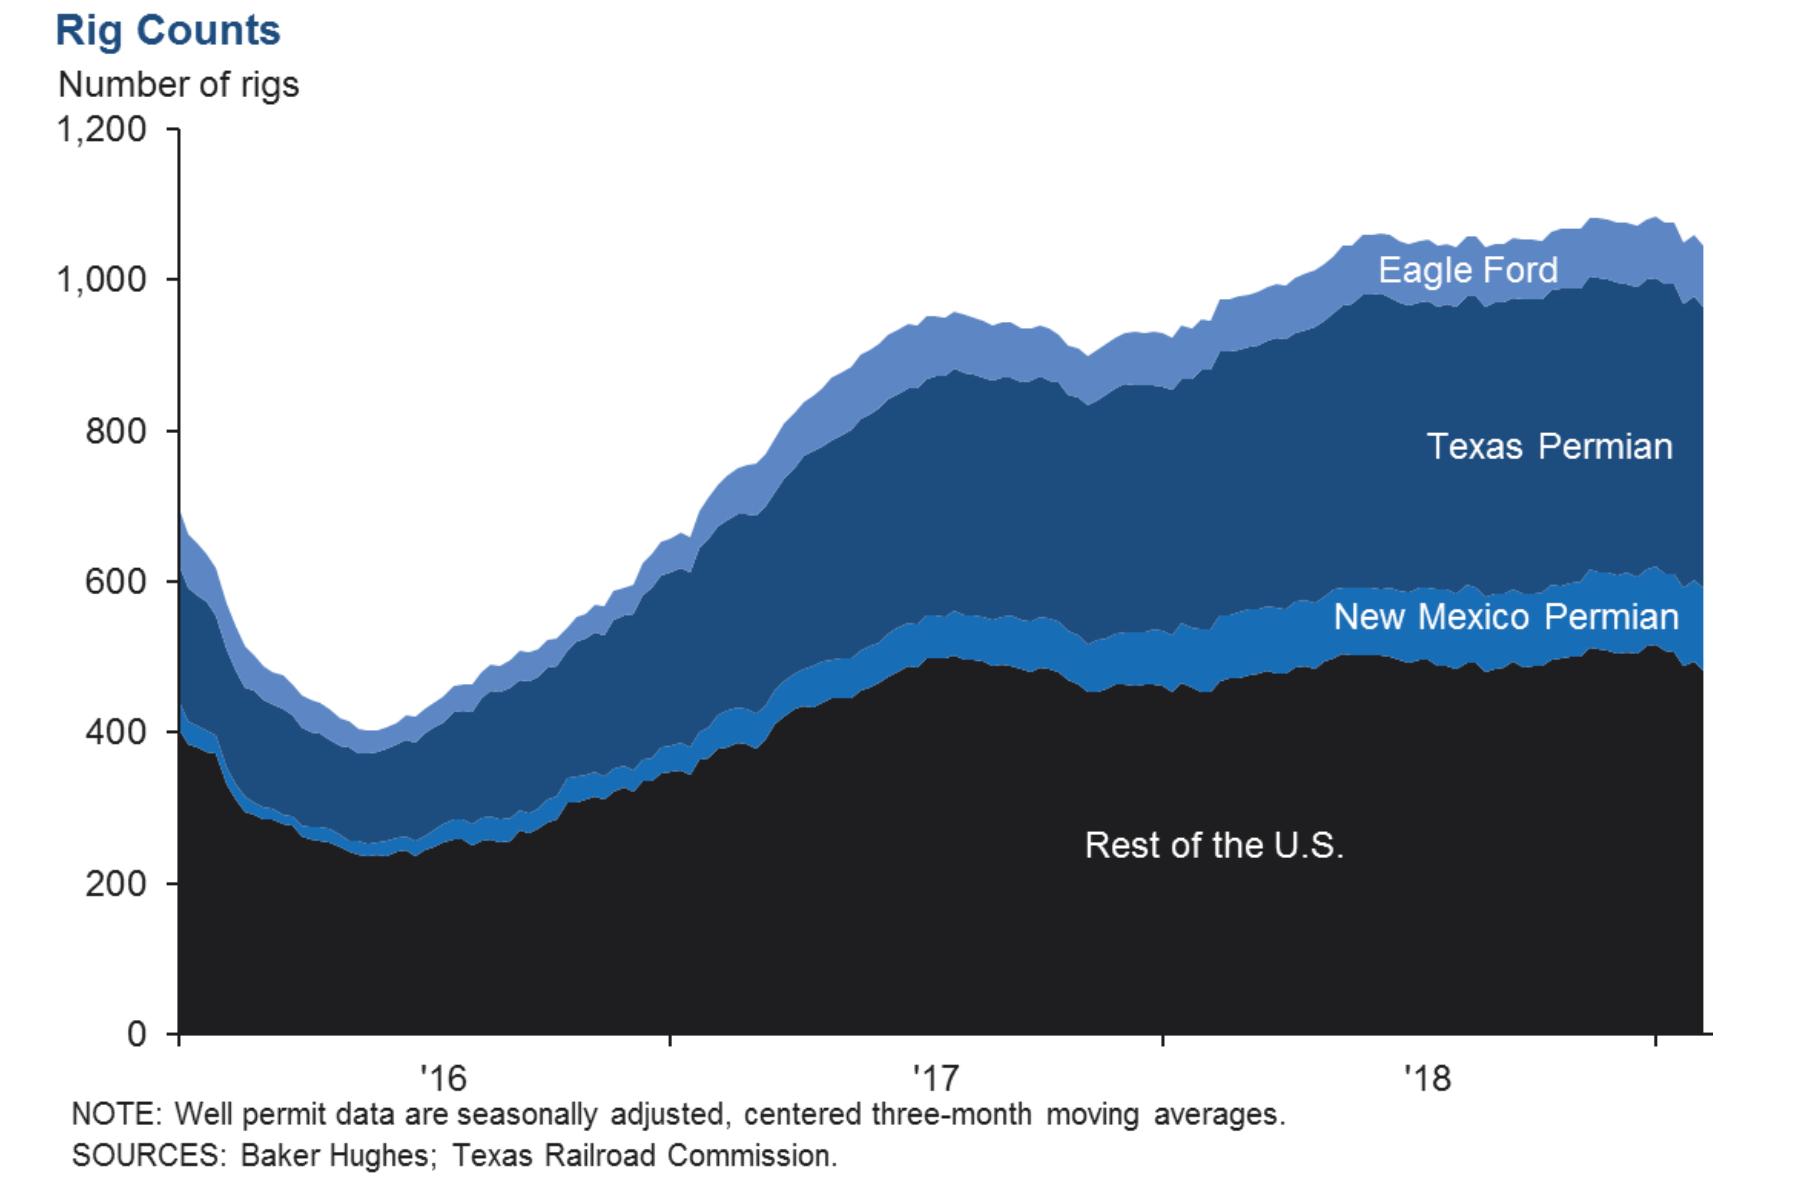 Dallas fed chart showing rig counts by region